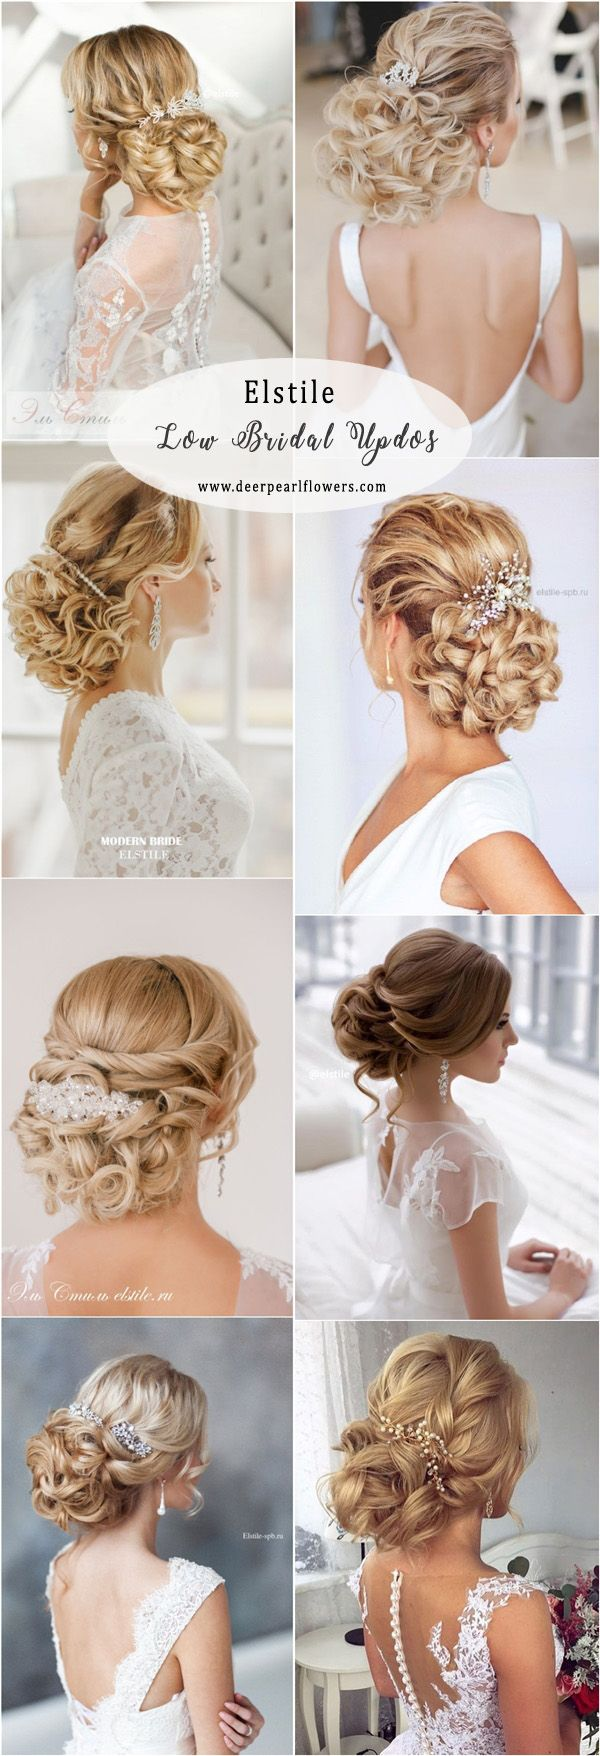 1005 best Wedding Updo images on Pinterest